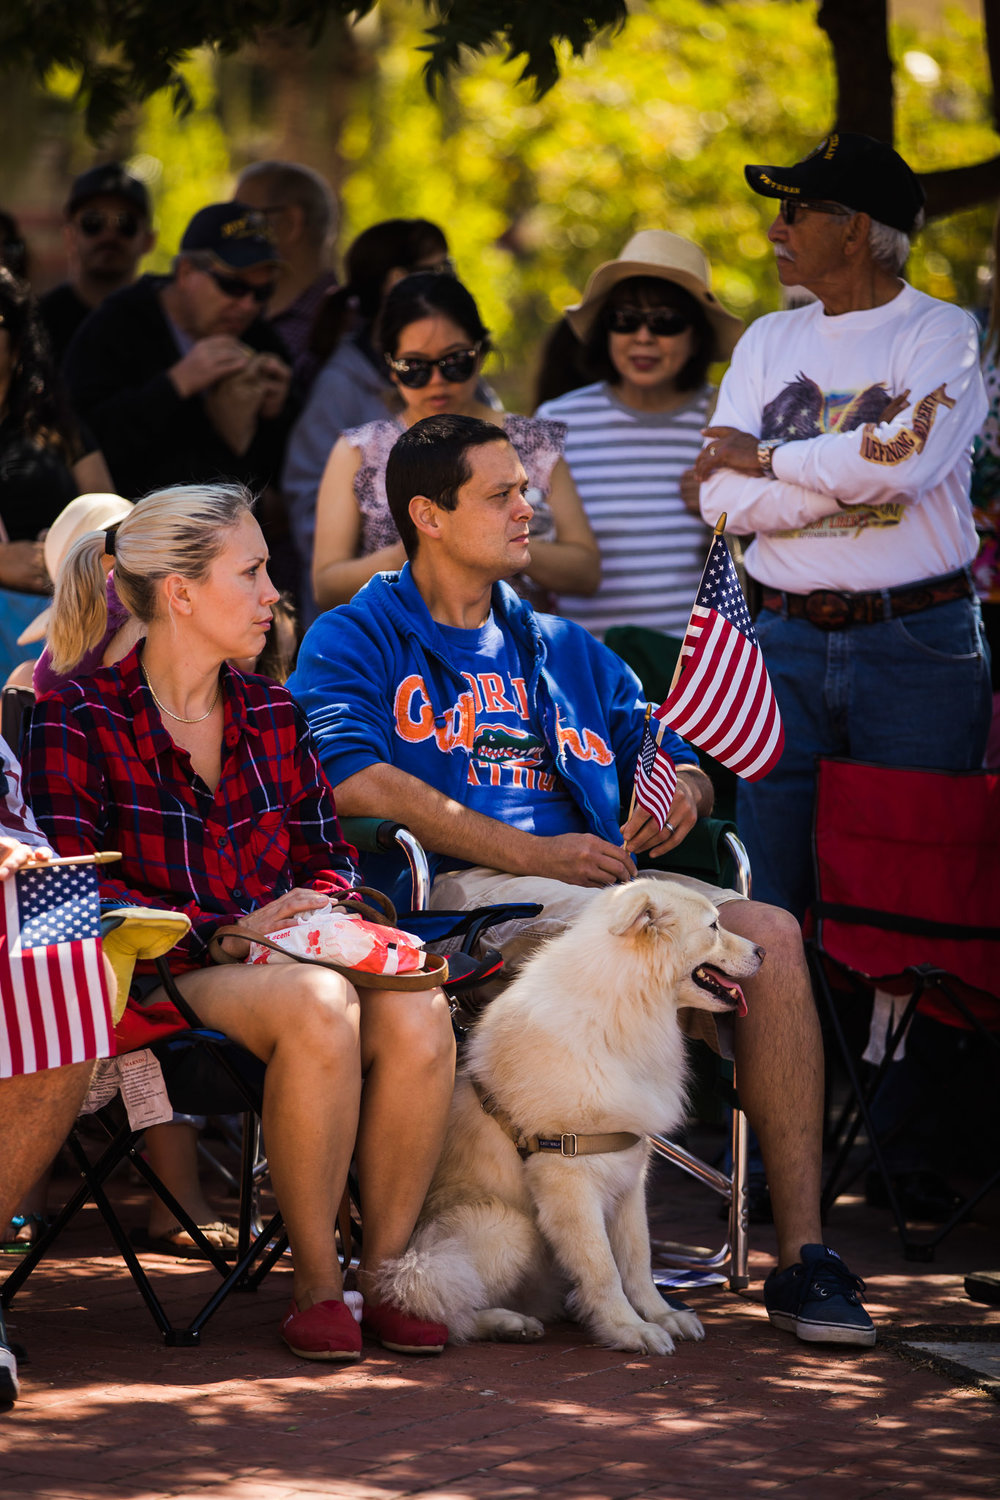 Archer_Inspired_Photography_Morgan_Hill_California_4th_of_july_parade-129.jpg